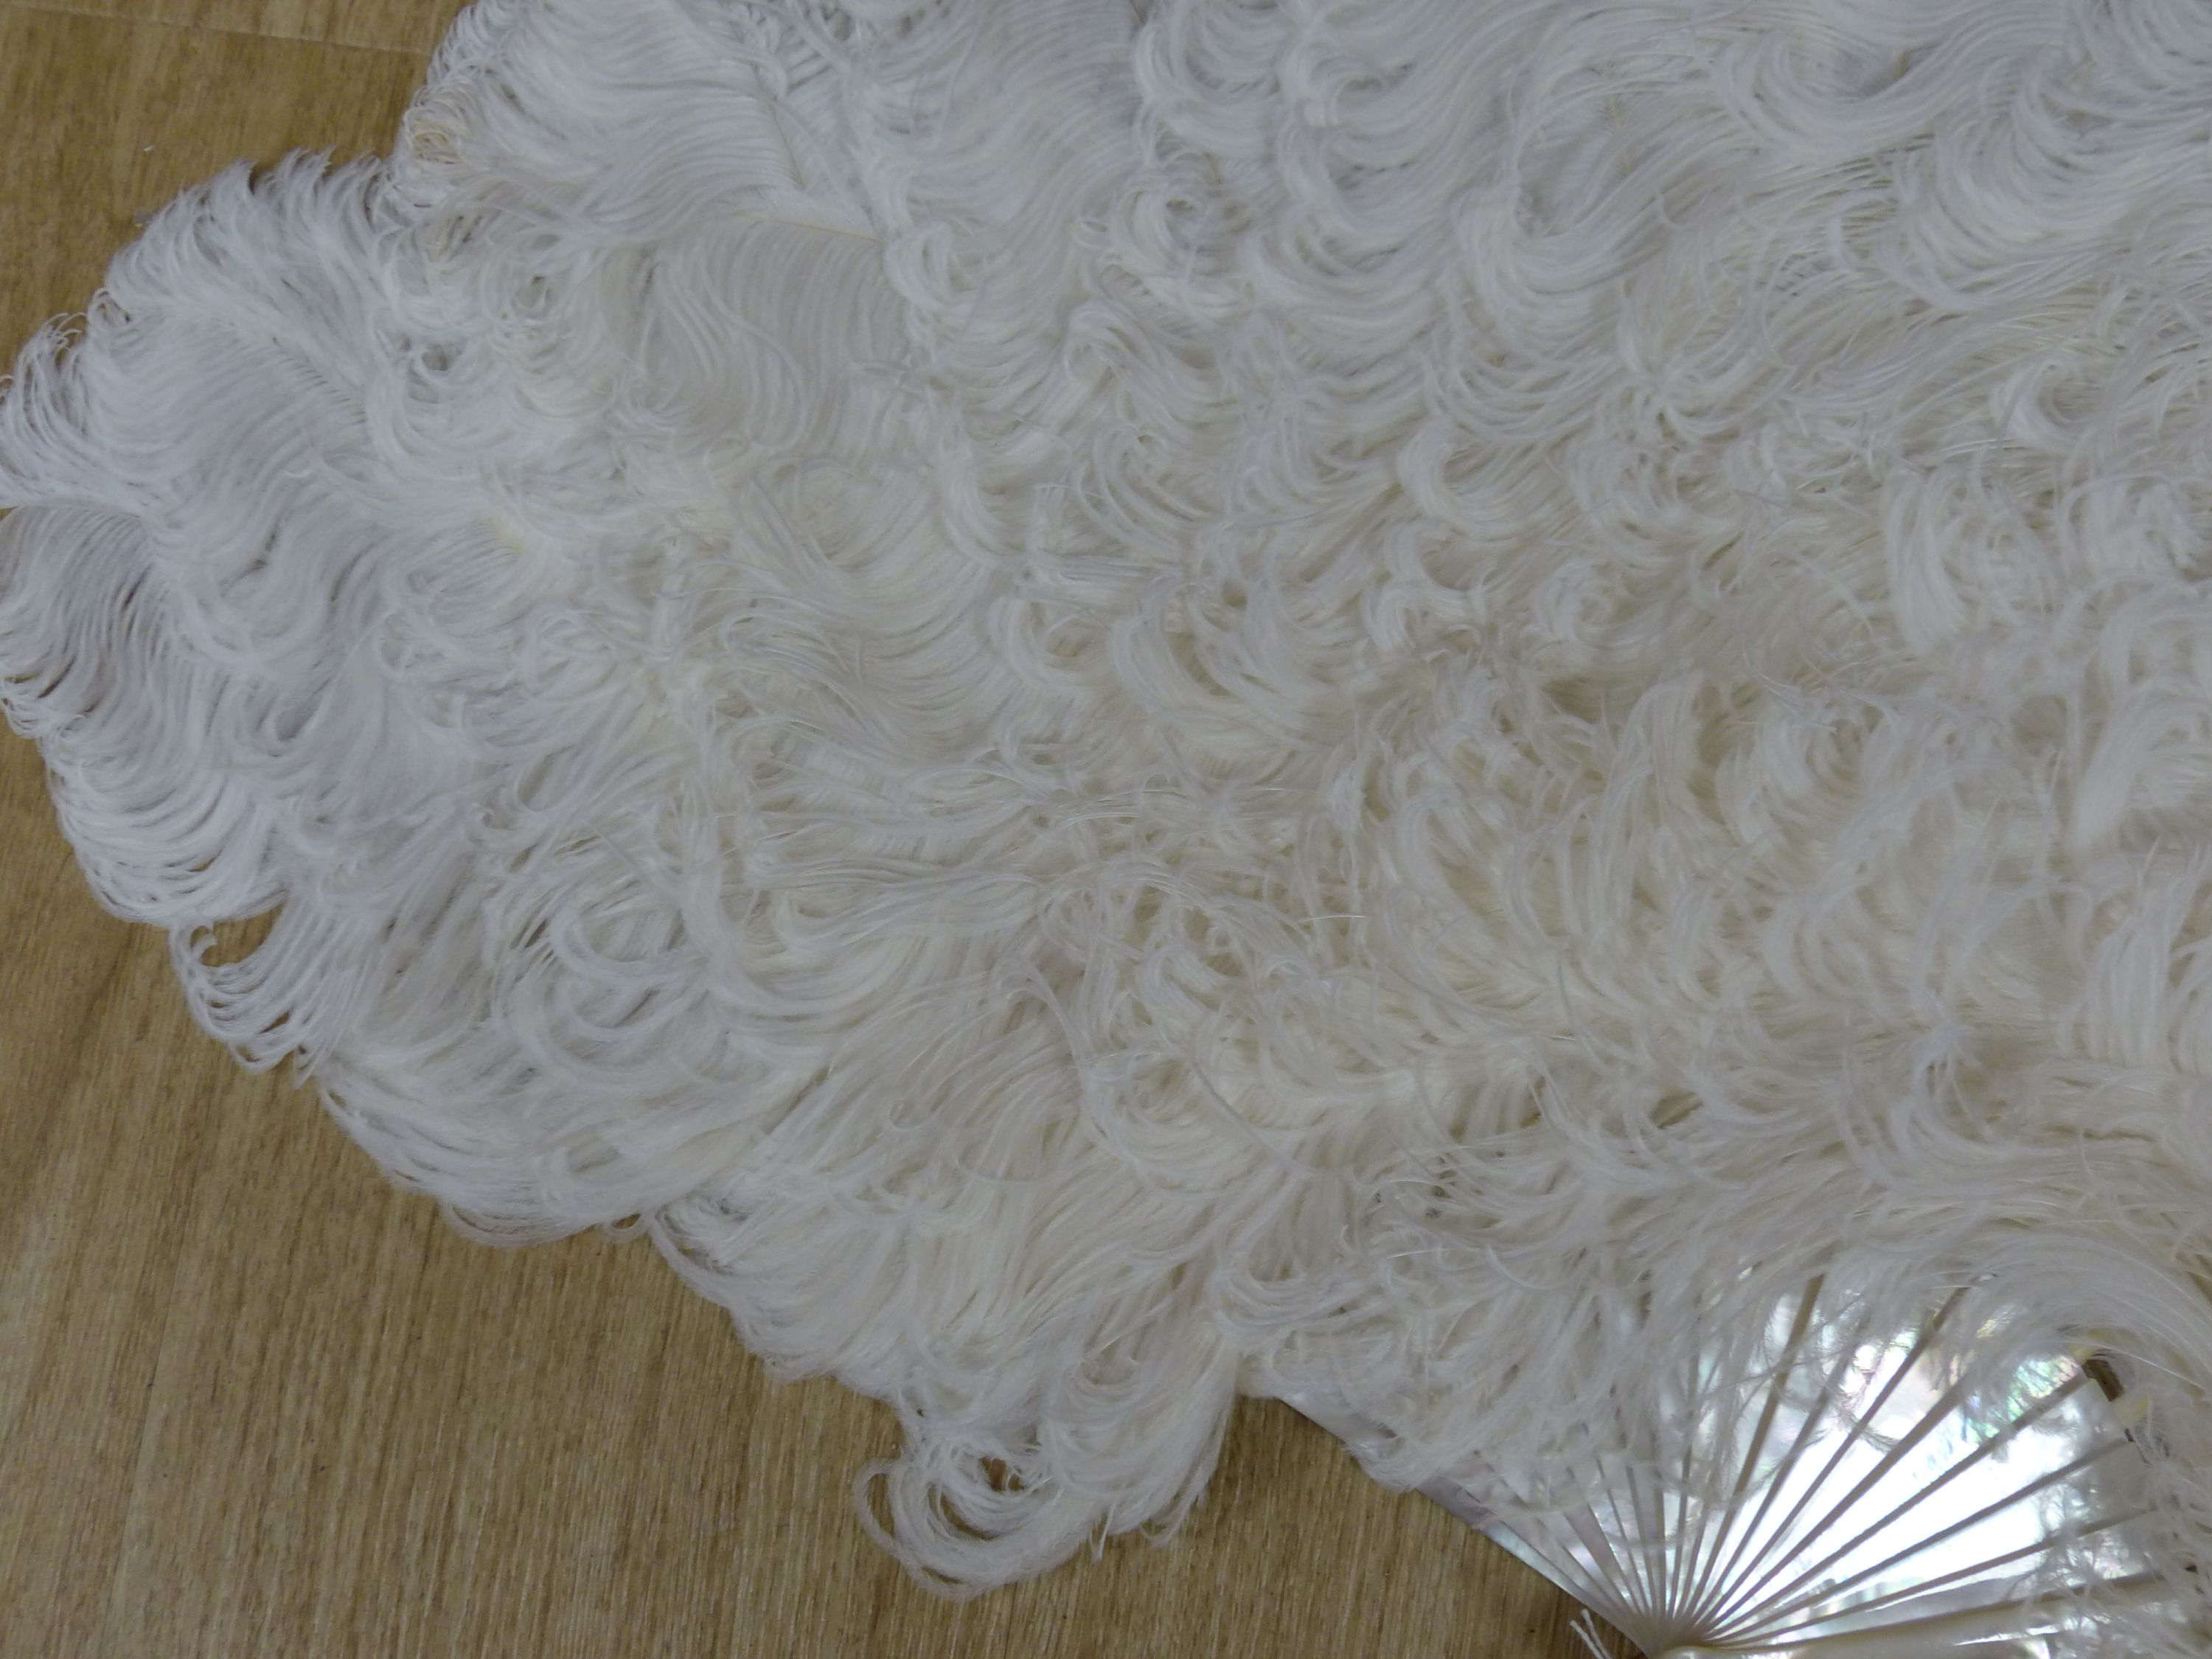 A boxed Duvelleroy ostrich feather fan, early 20th century - Image 6 of 6